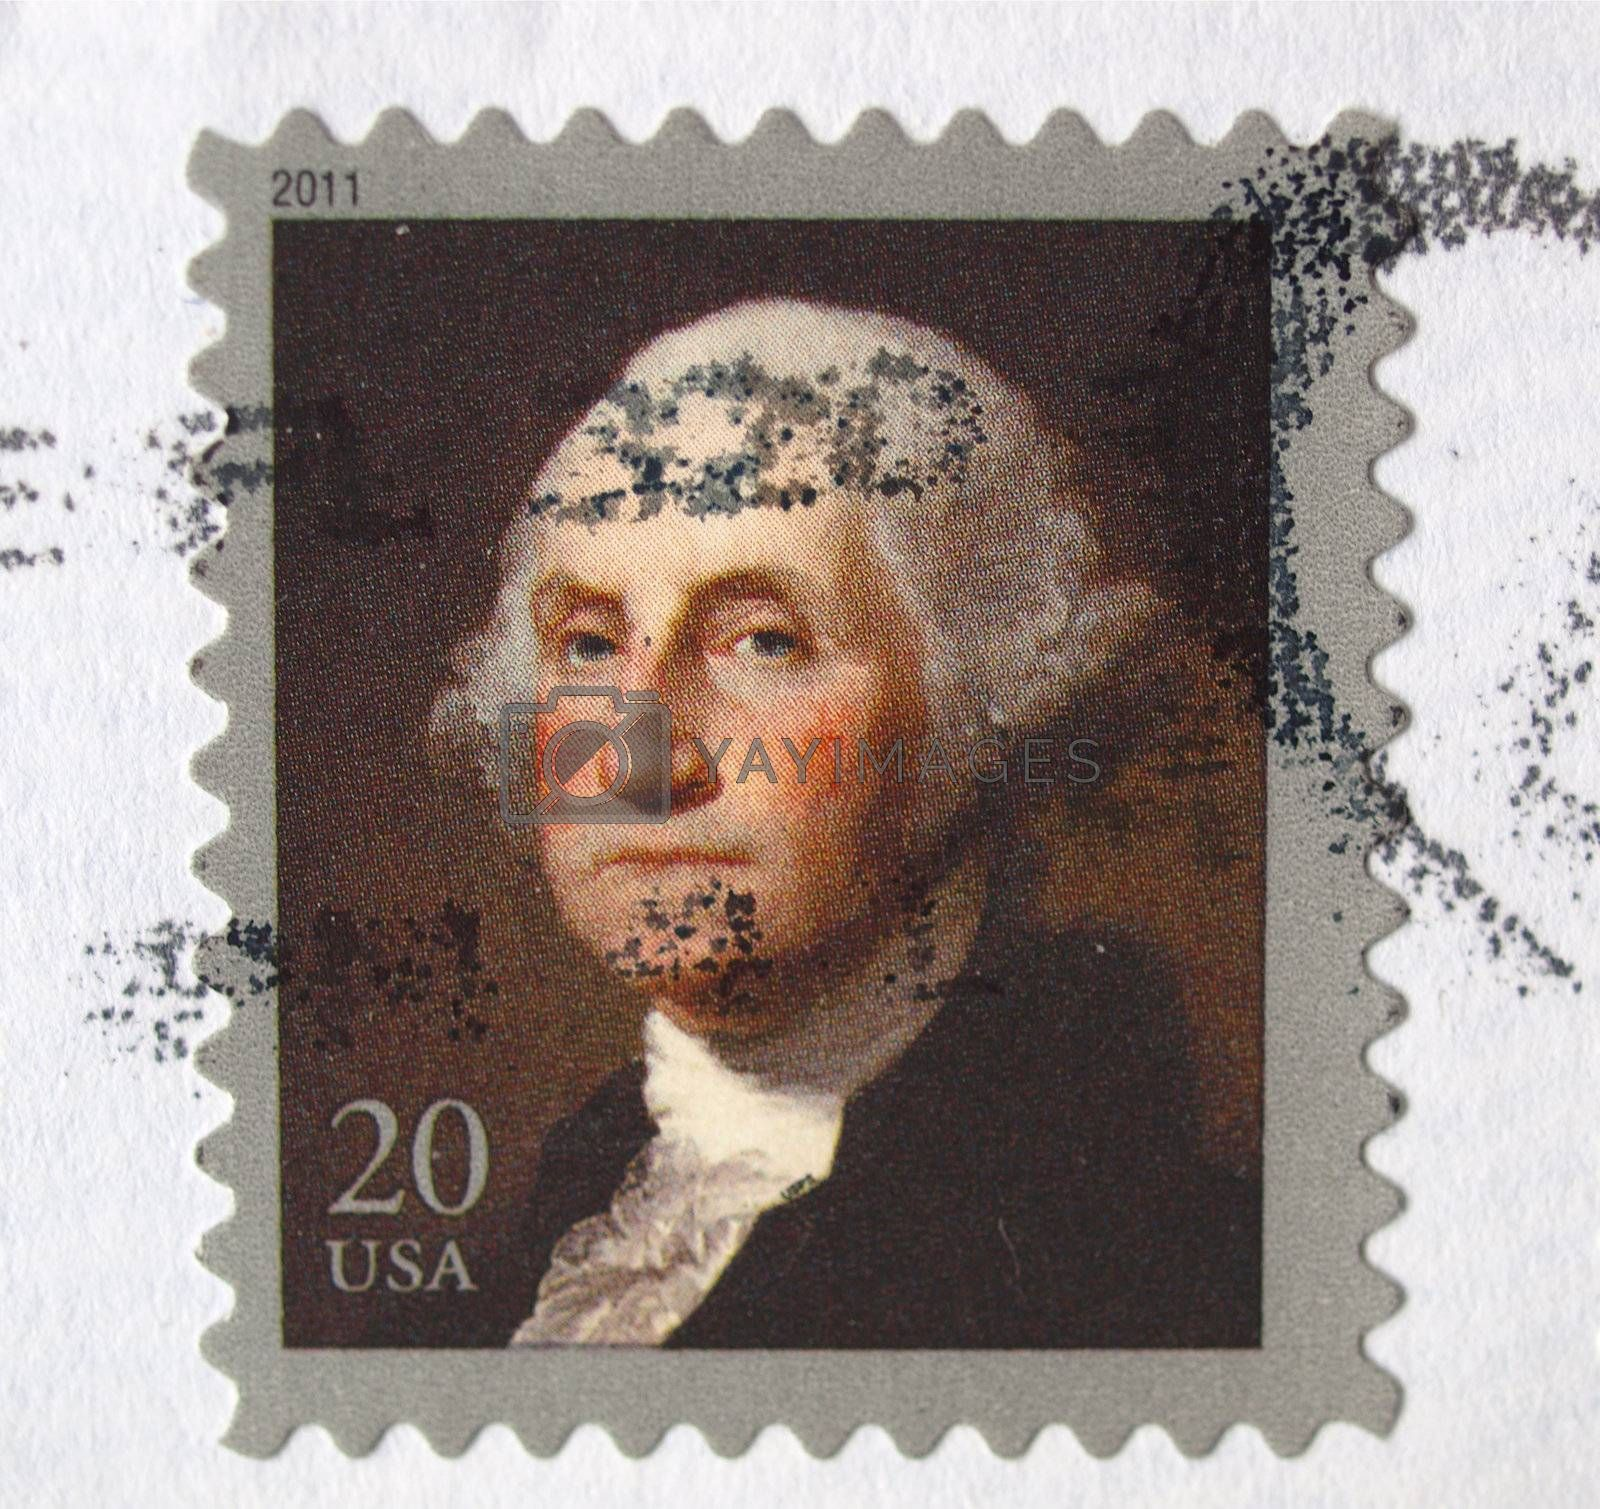 USA, 2011 - United States of America (USA) postage stamp depicting president George Washington (1732-1799), USA, 2011